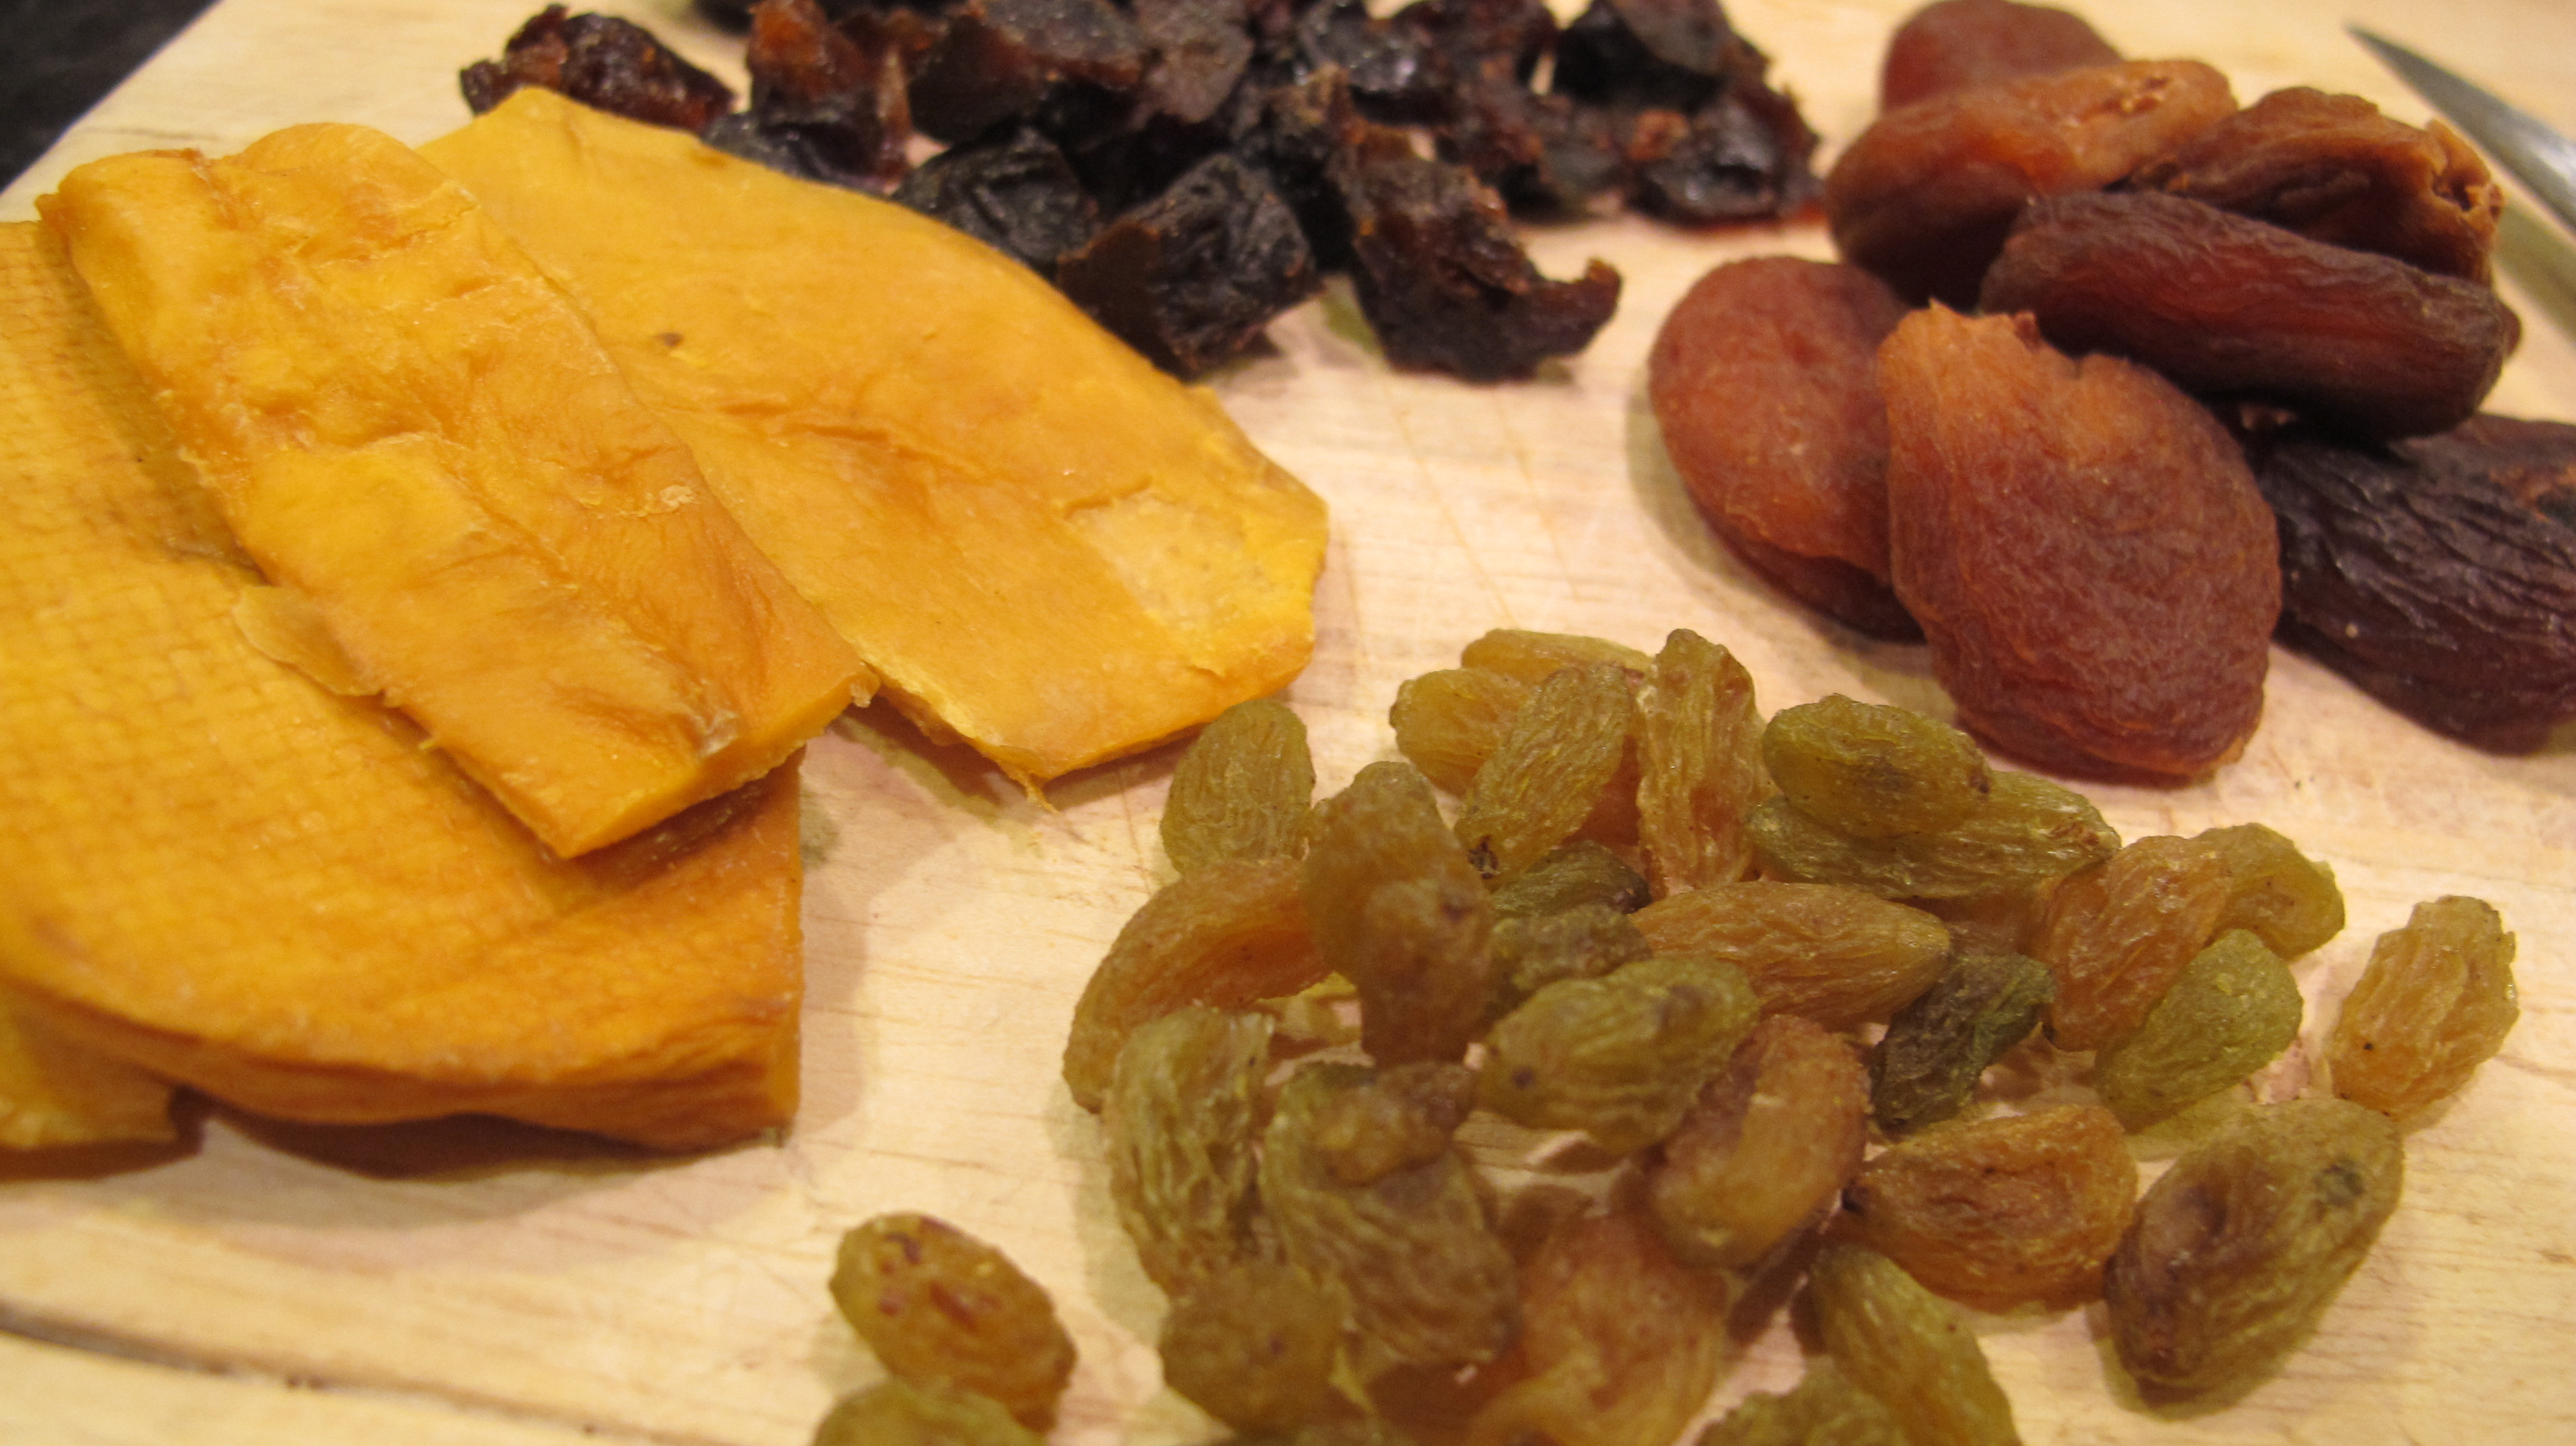 A fine selection of dried apricot, prune, mango, and raisins.